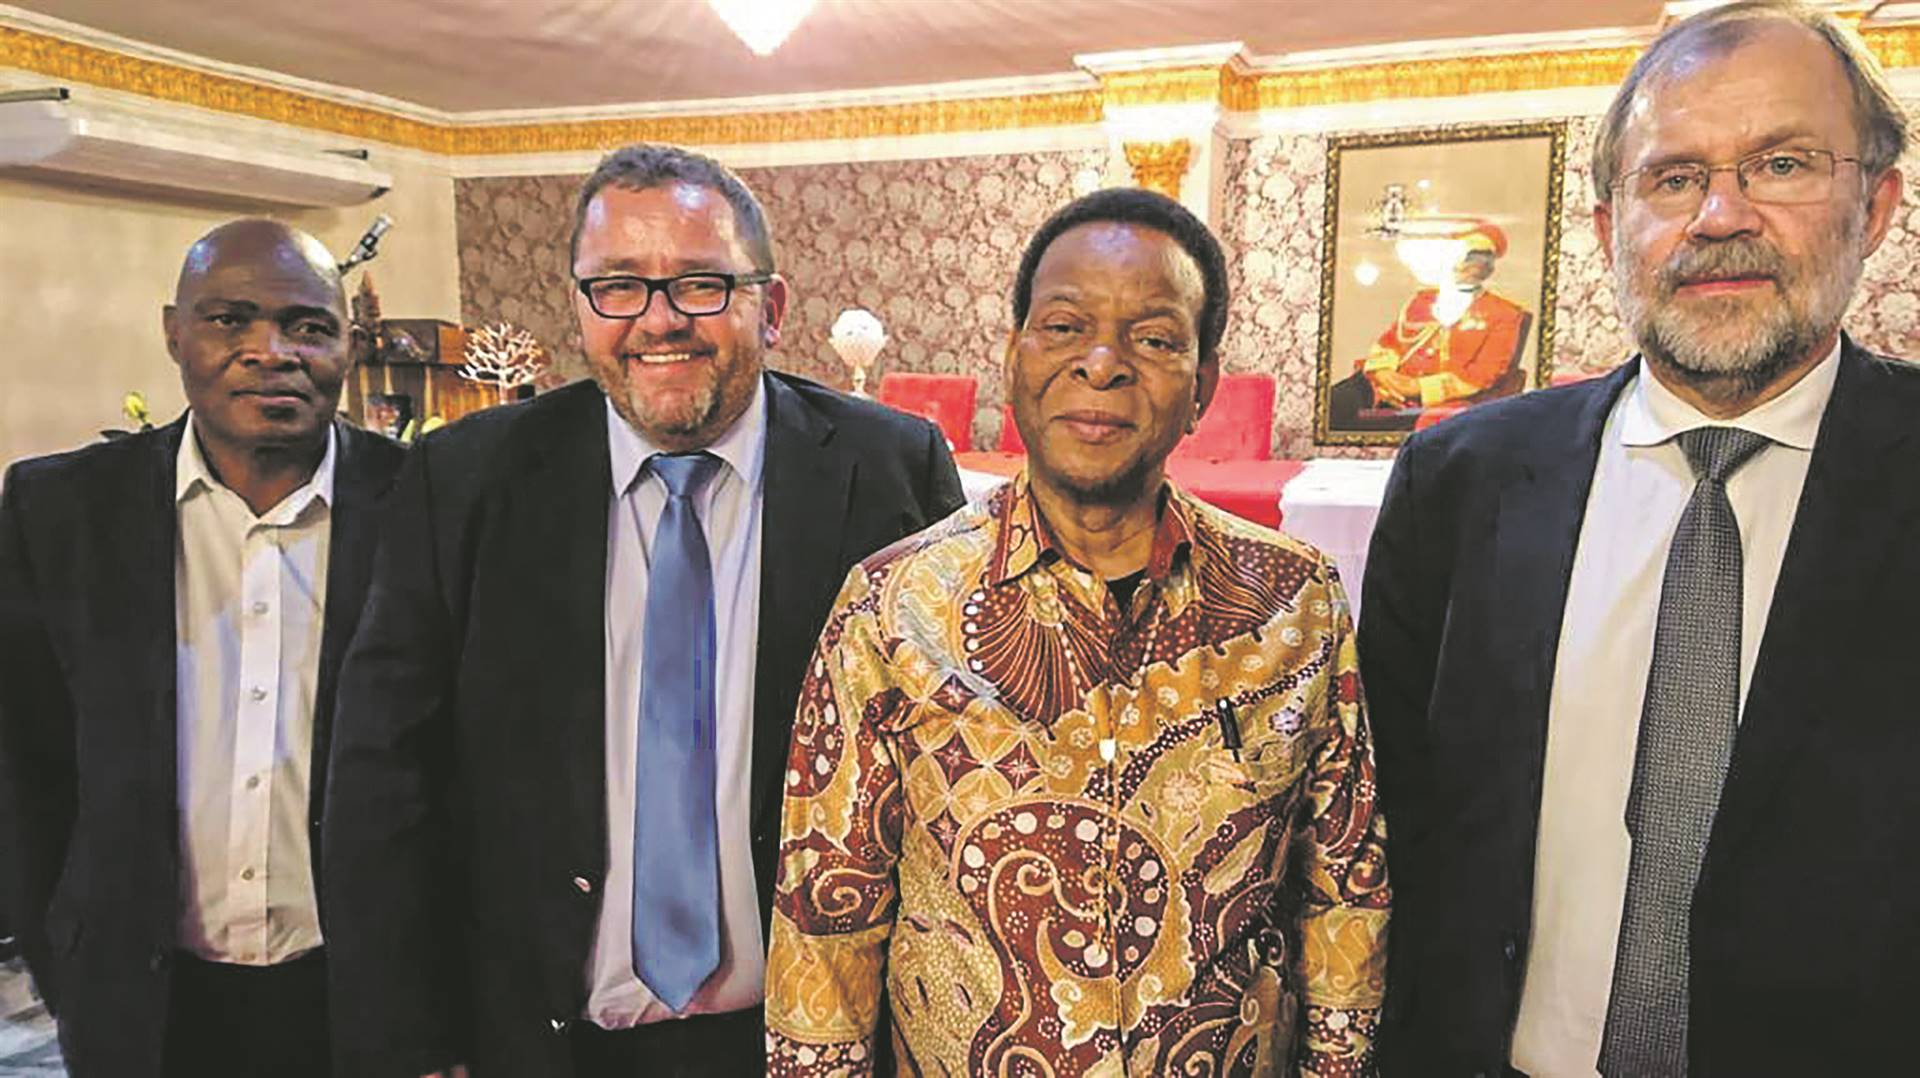 From left are Judge Jerome Ngwenya of the Ingonyama Trust, Kallie Kriel of AfriForum, King Goodwill Zwelithini and Flip Buys of Solidarity. Photo: Supplied